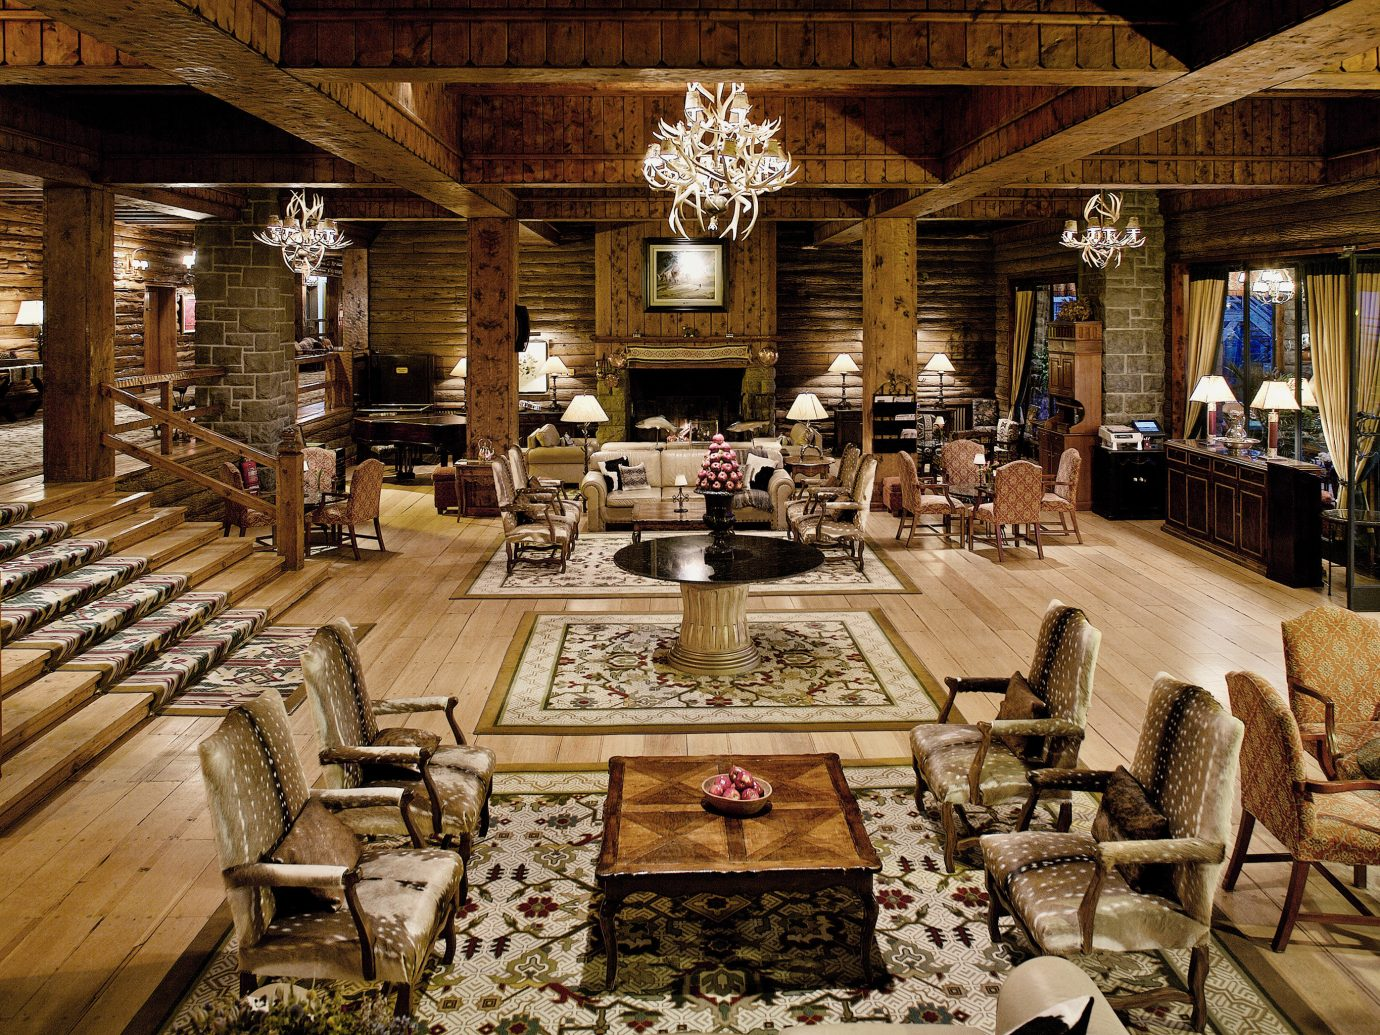 Fireplace Hotels Lobby Lounge Resort Rustic indoor Living estate furniture interior design mansion restaurant ancient history several